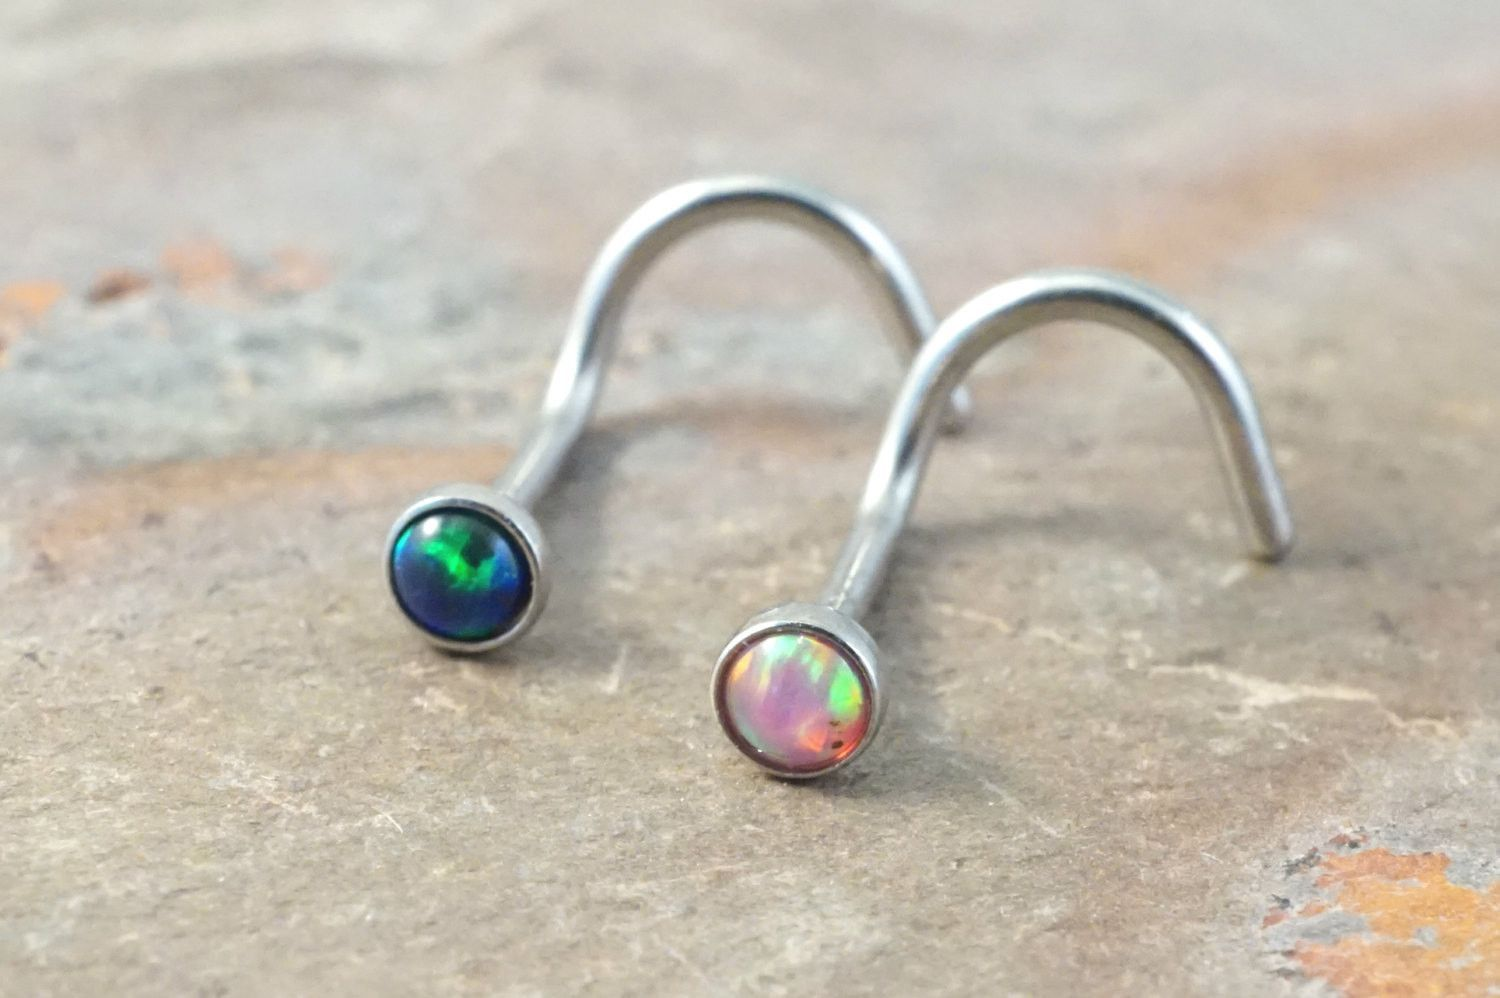 Corkscrew nose piercing  Pink Opal and Black Fire Opal Corkscrew Nose Piercing Ring Stud